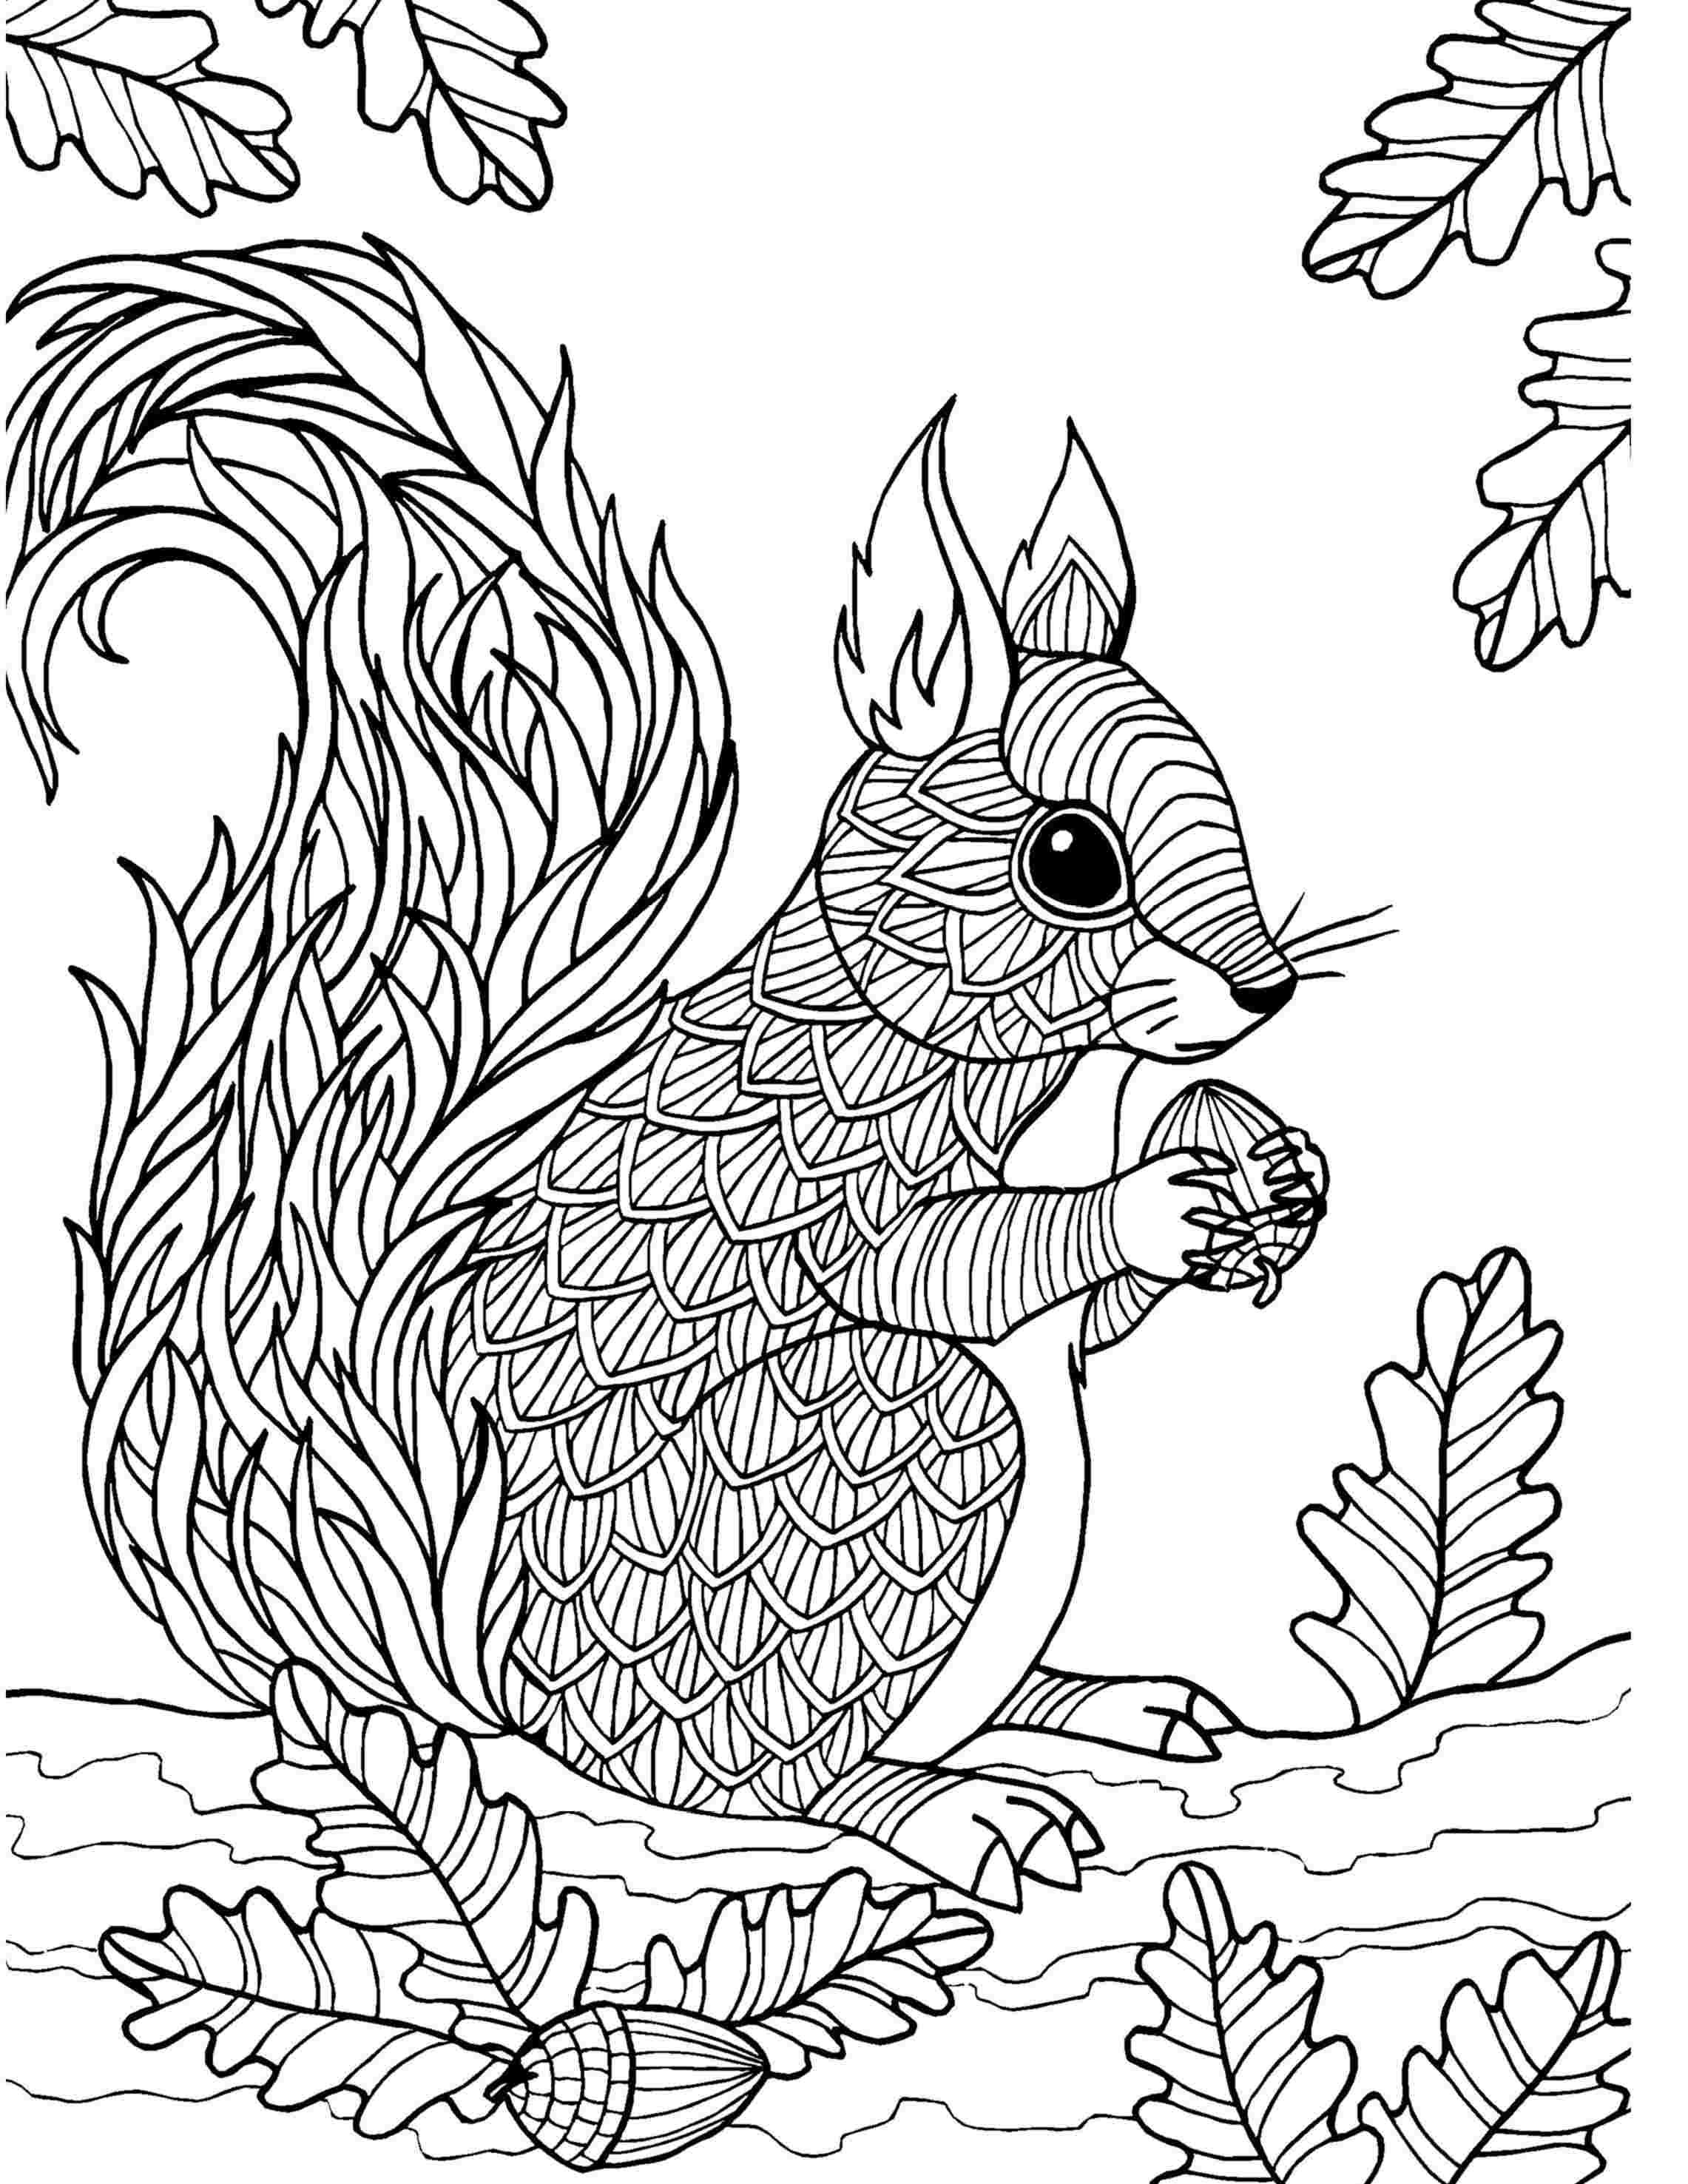 squirrel coloring pages for adults coloring pages for adults